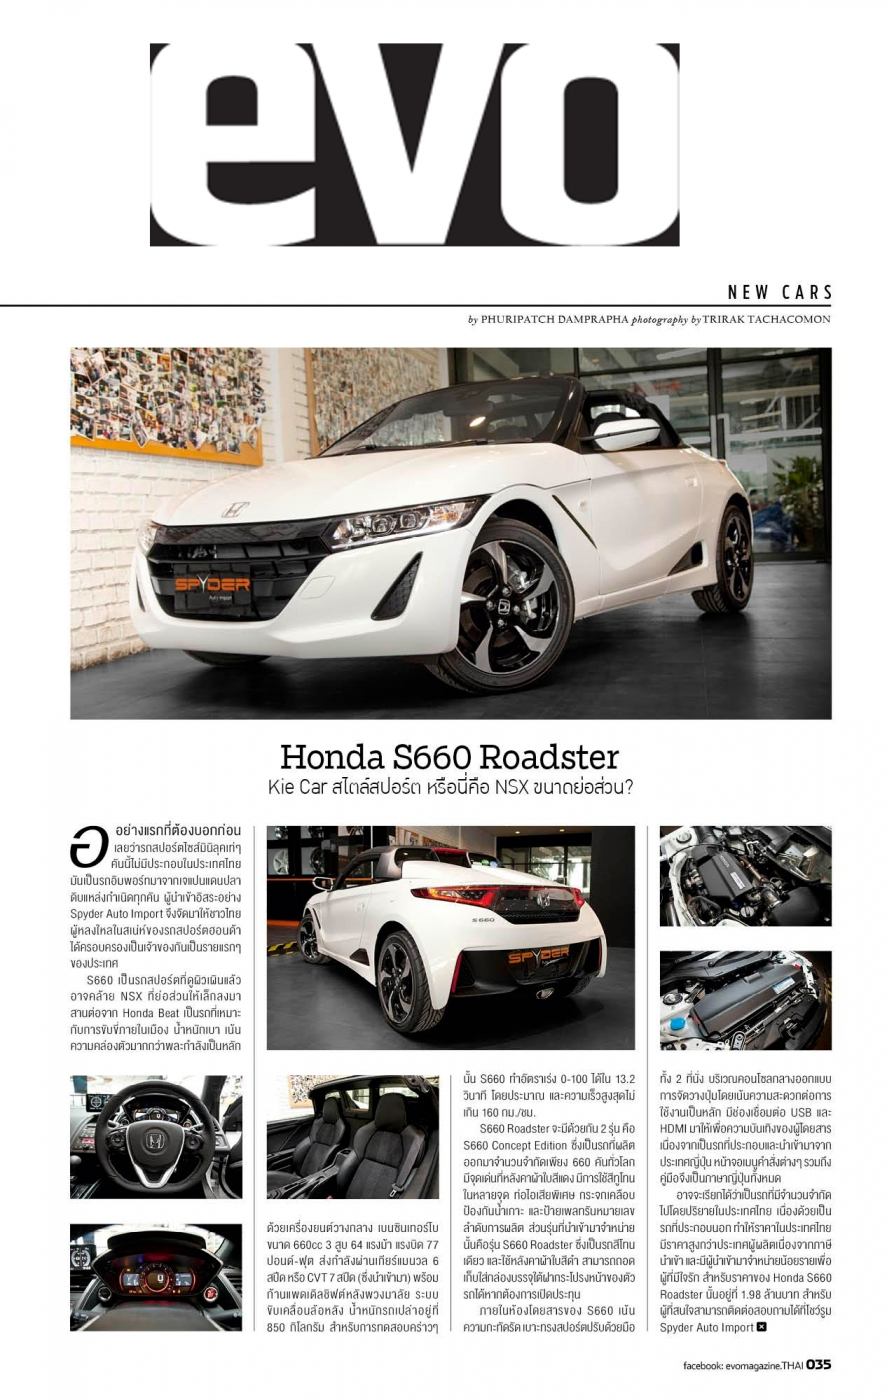 honda s660 roadster kei car nsx. Black Bedroom Furniture Sets. Home Design Ideas